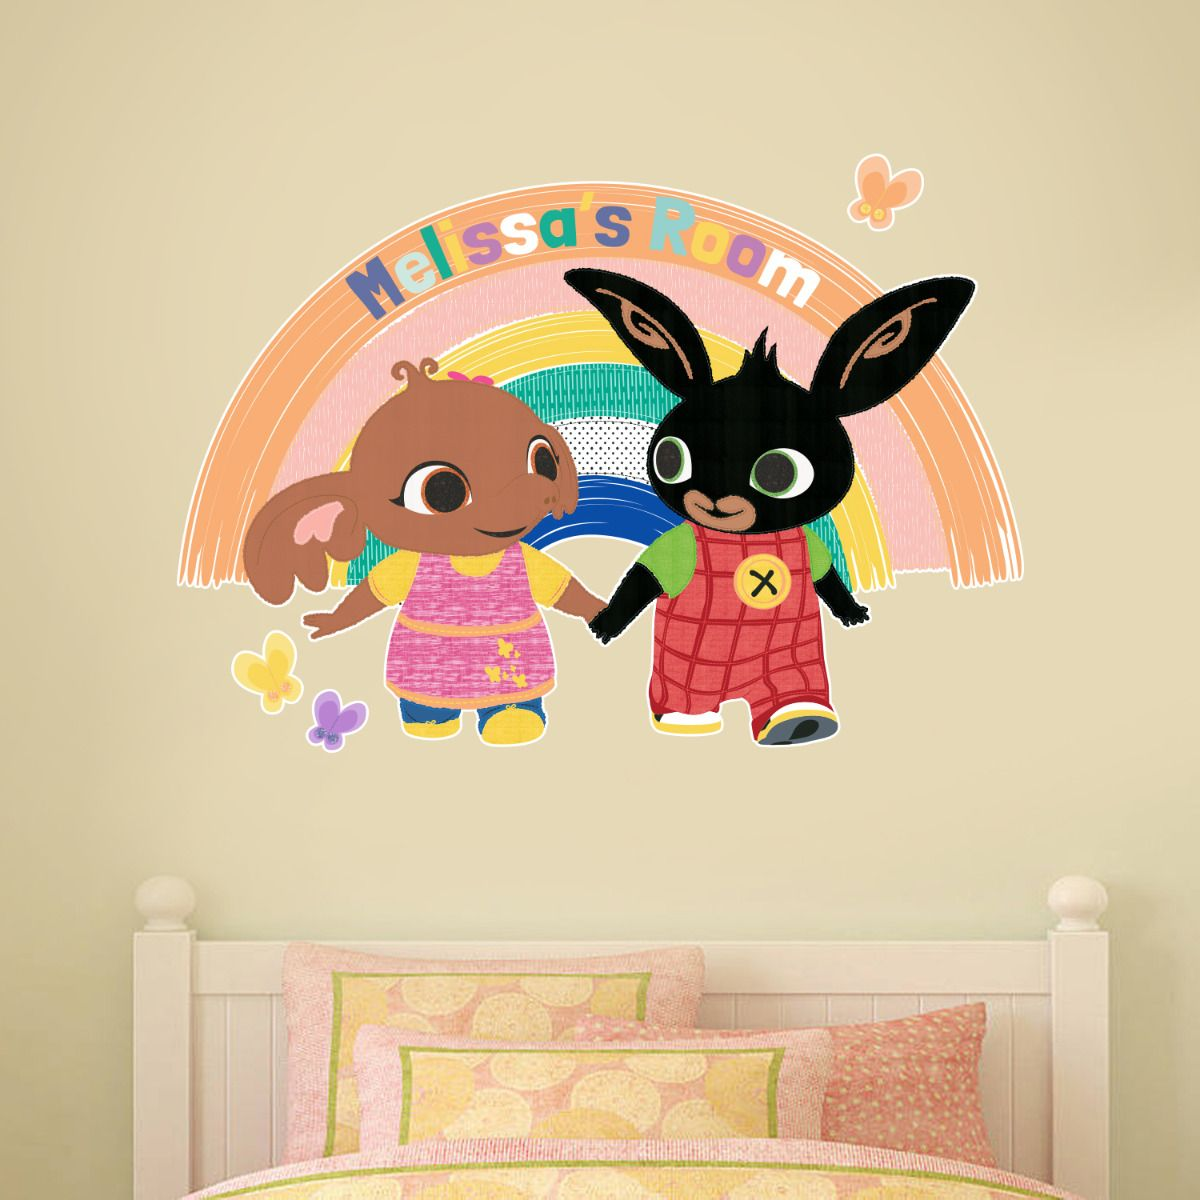 Bing Wall Sticker - Bing and Sula Rainbow Personalised name